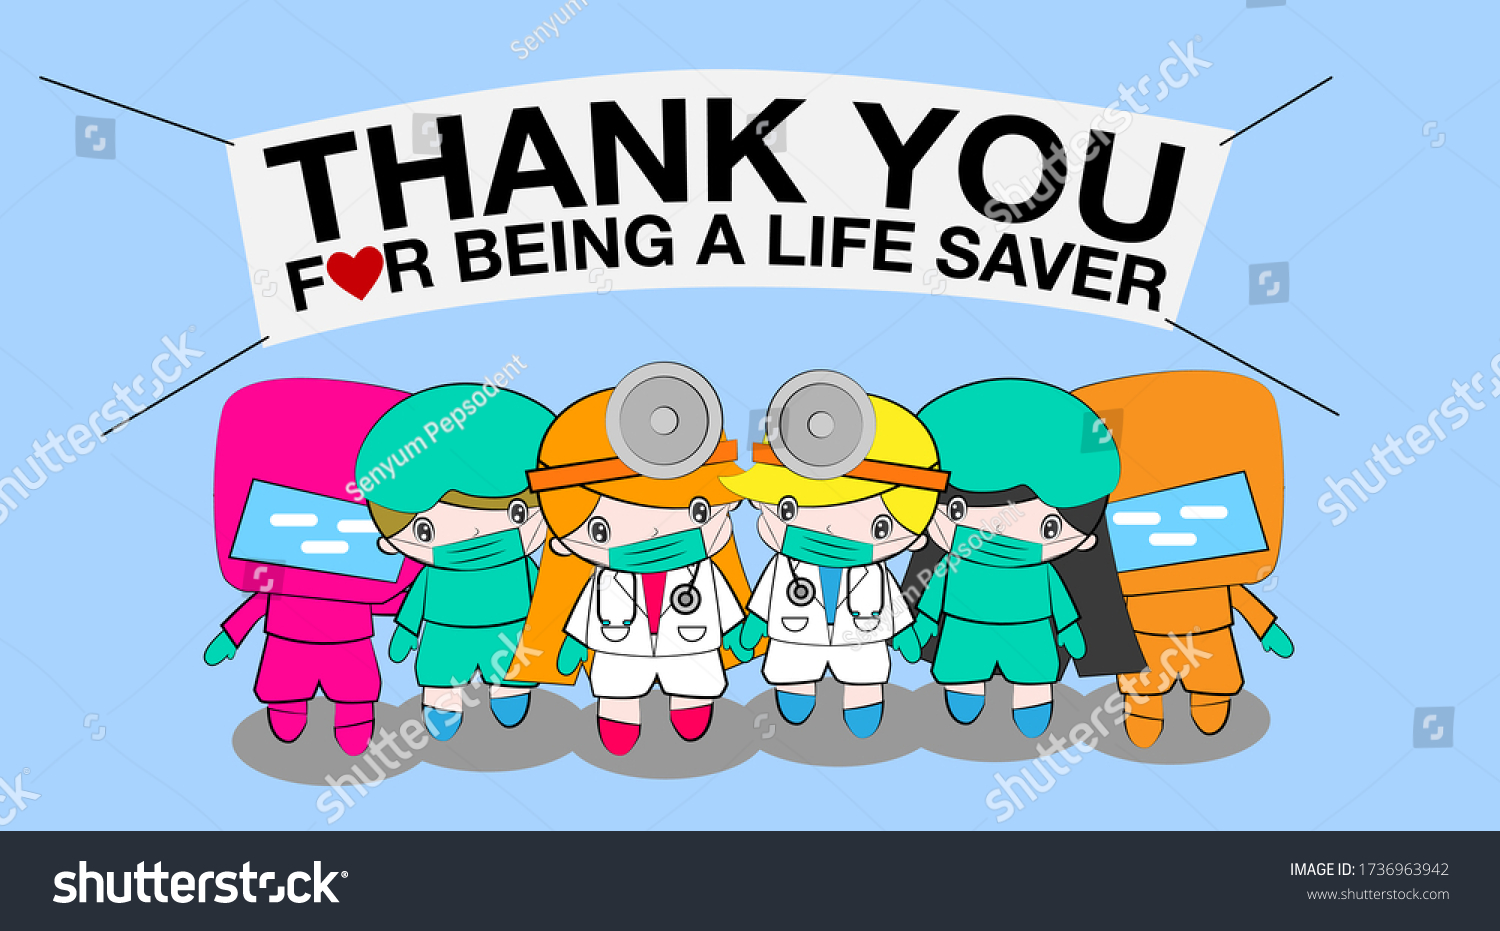 Thank you doctor and Nurses and medical personnel team for fighting the new type corona virus or covid-19. vector character with cartoon illustration